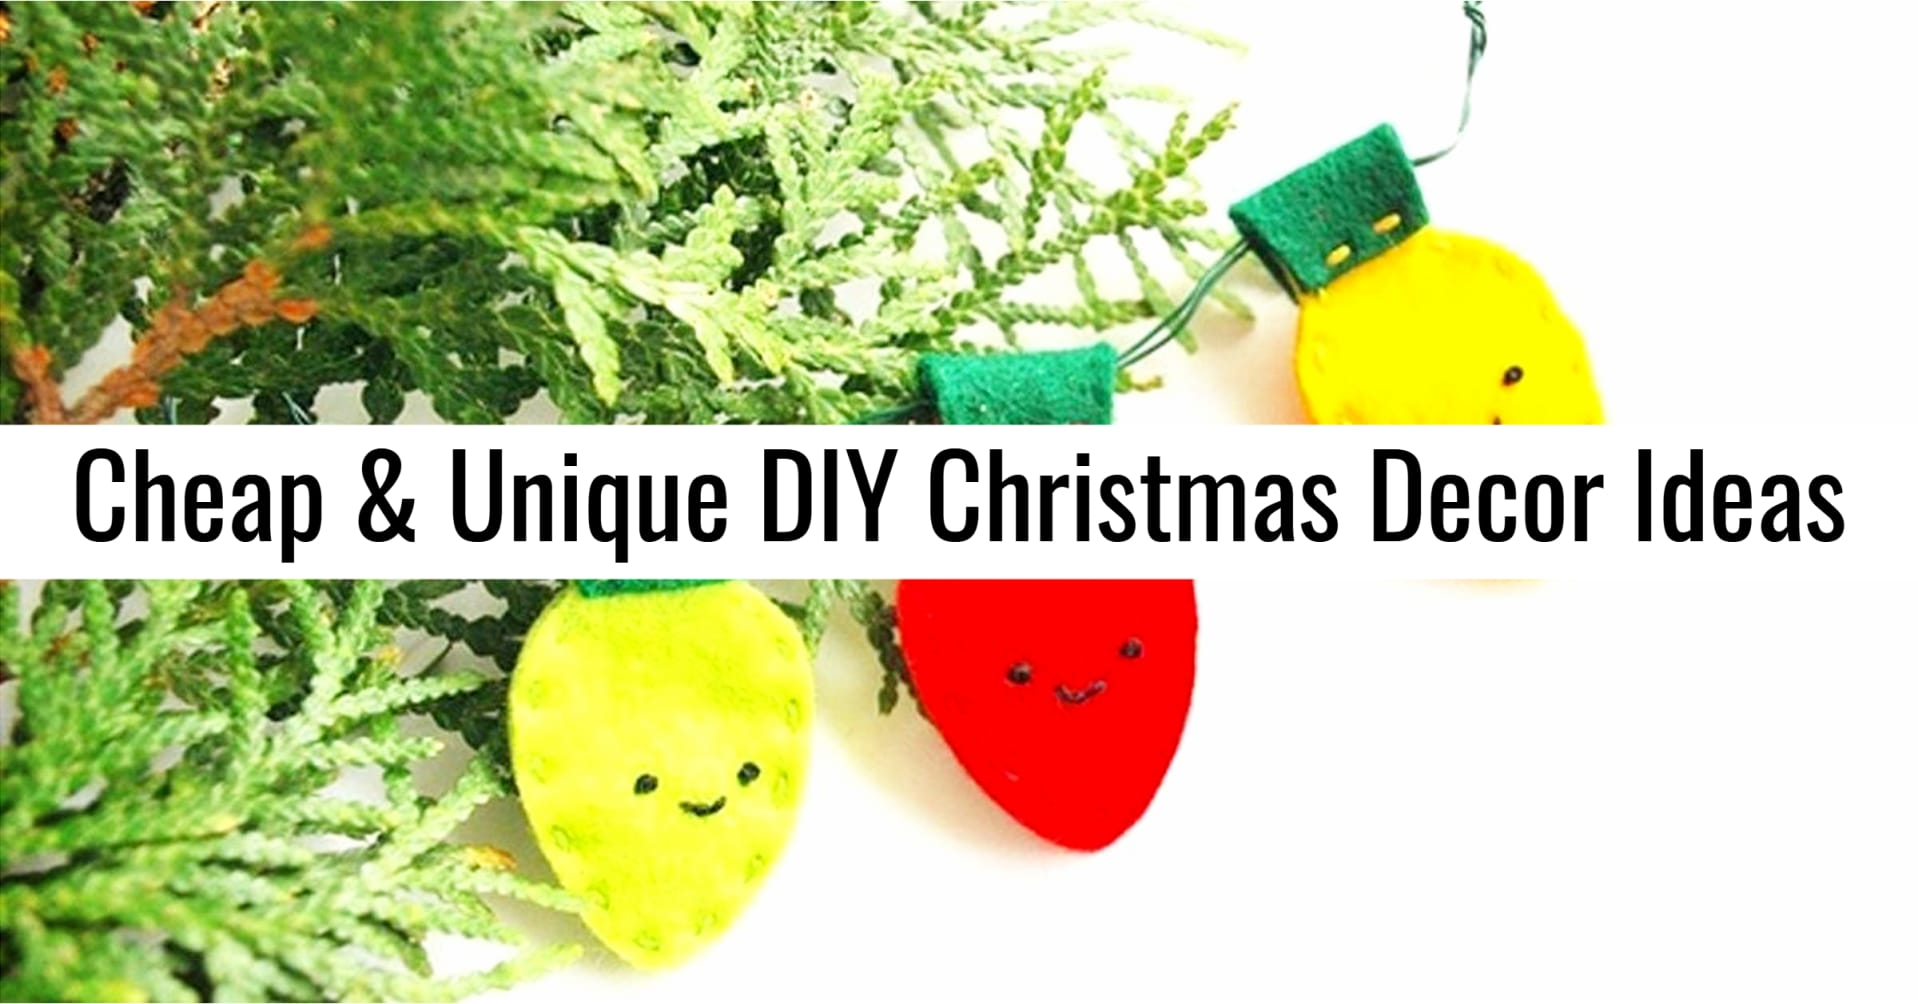 Christmas on a Budget - Cheap and Unique DIY Christmas Decor and Decorations to Make on a Tight Budget